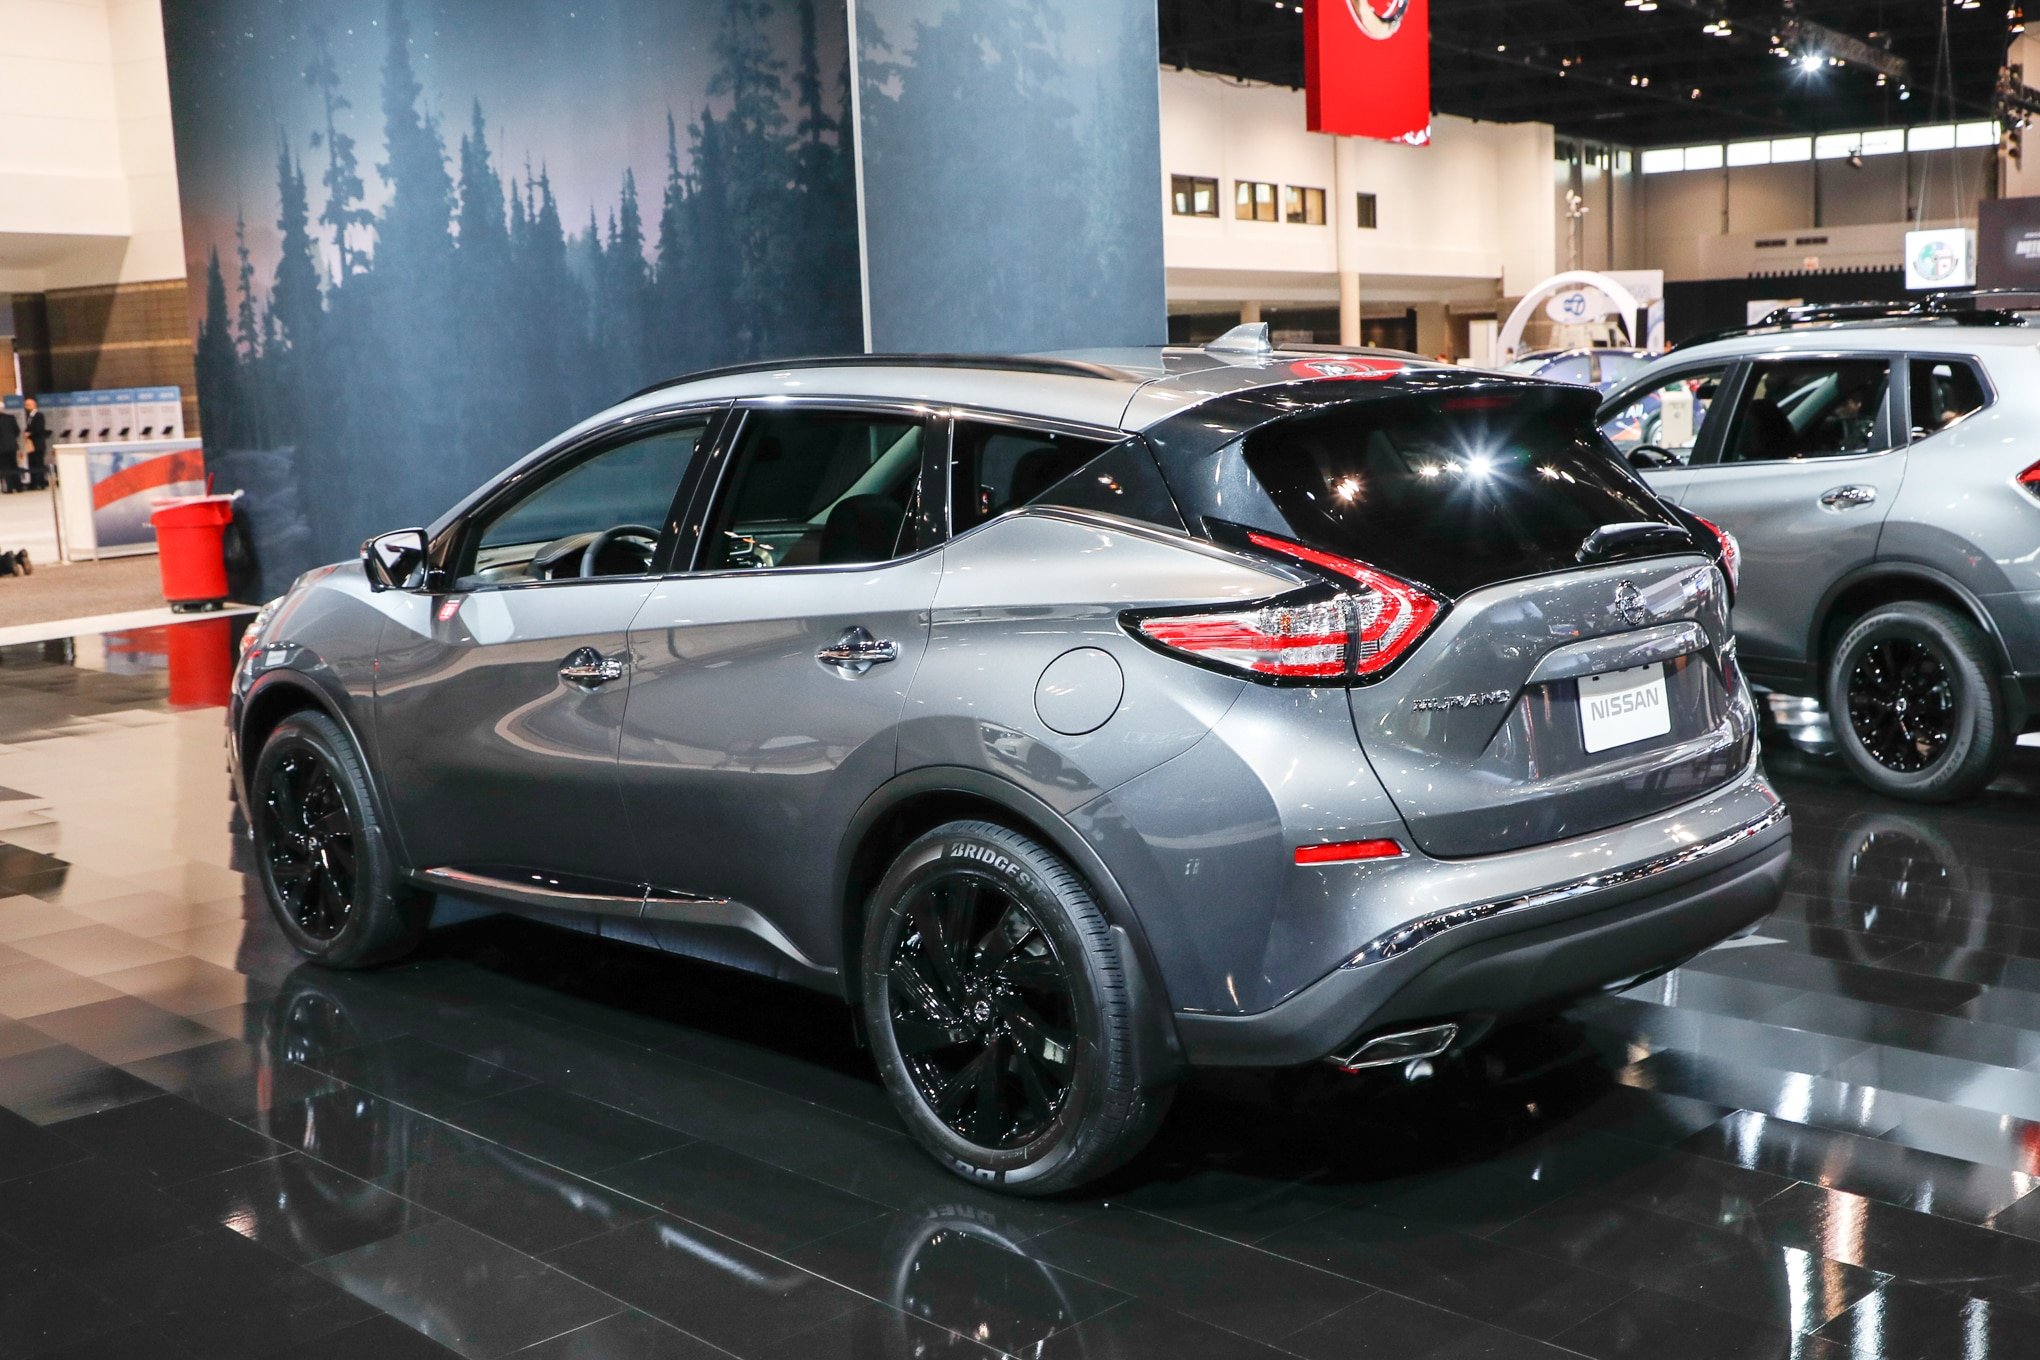 2017 nissan murano platinum midnight edition rear three quarter 1 motor trend en espa ol. Black Bedroom Furniture Sets. Home Design Ideas